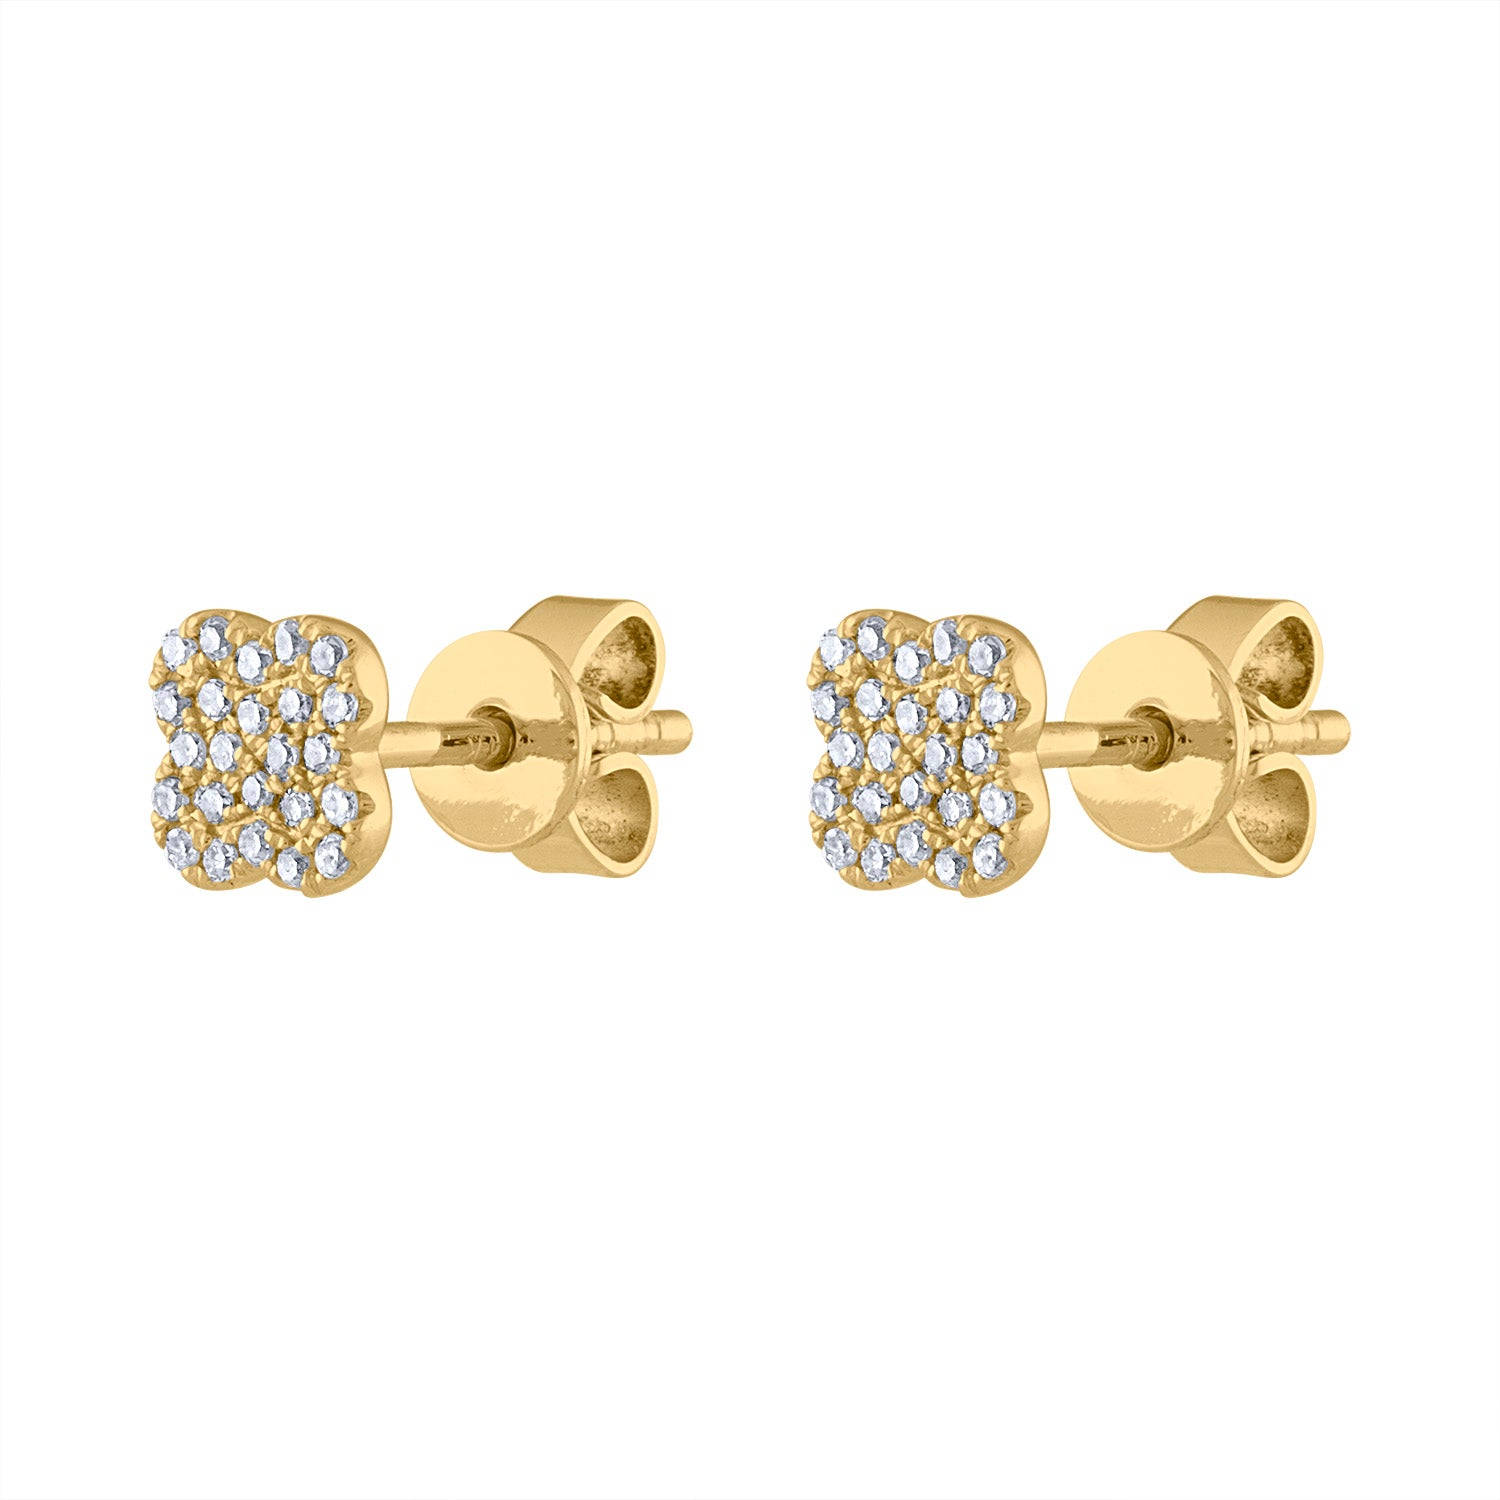 14K Yellow Gold small pave clover earring